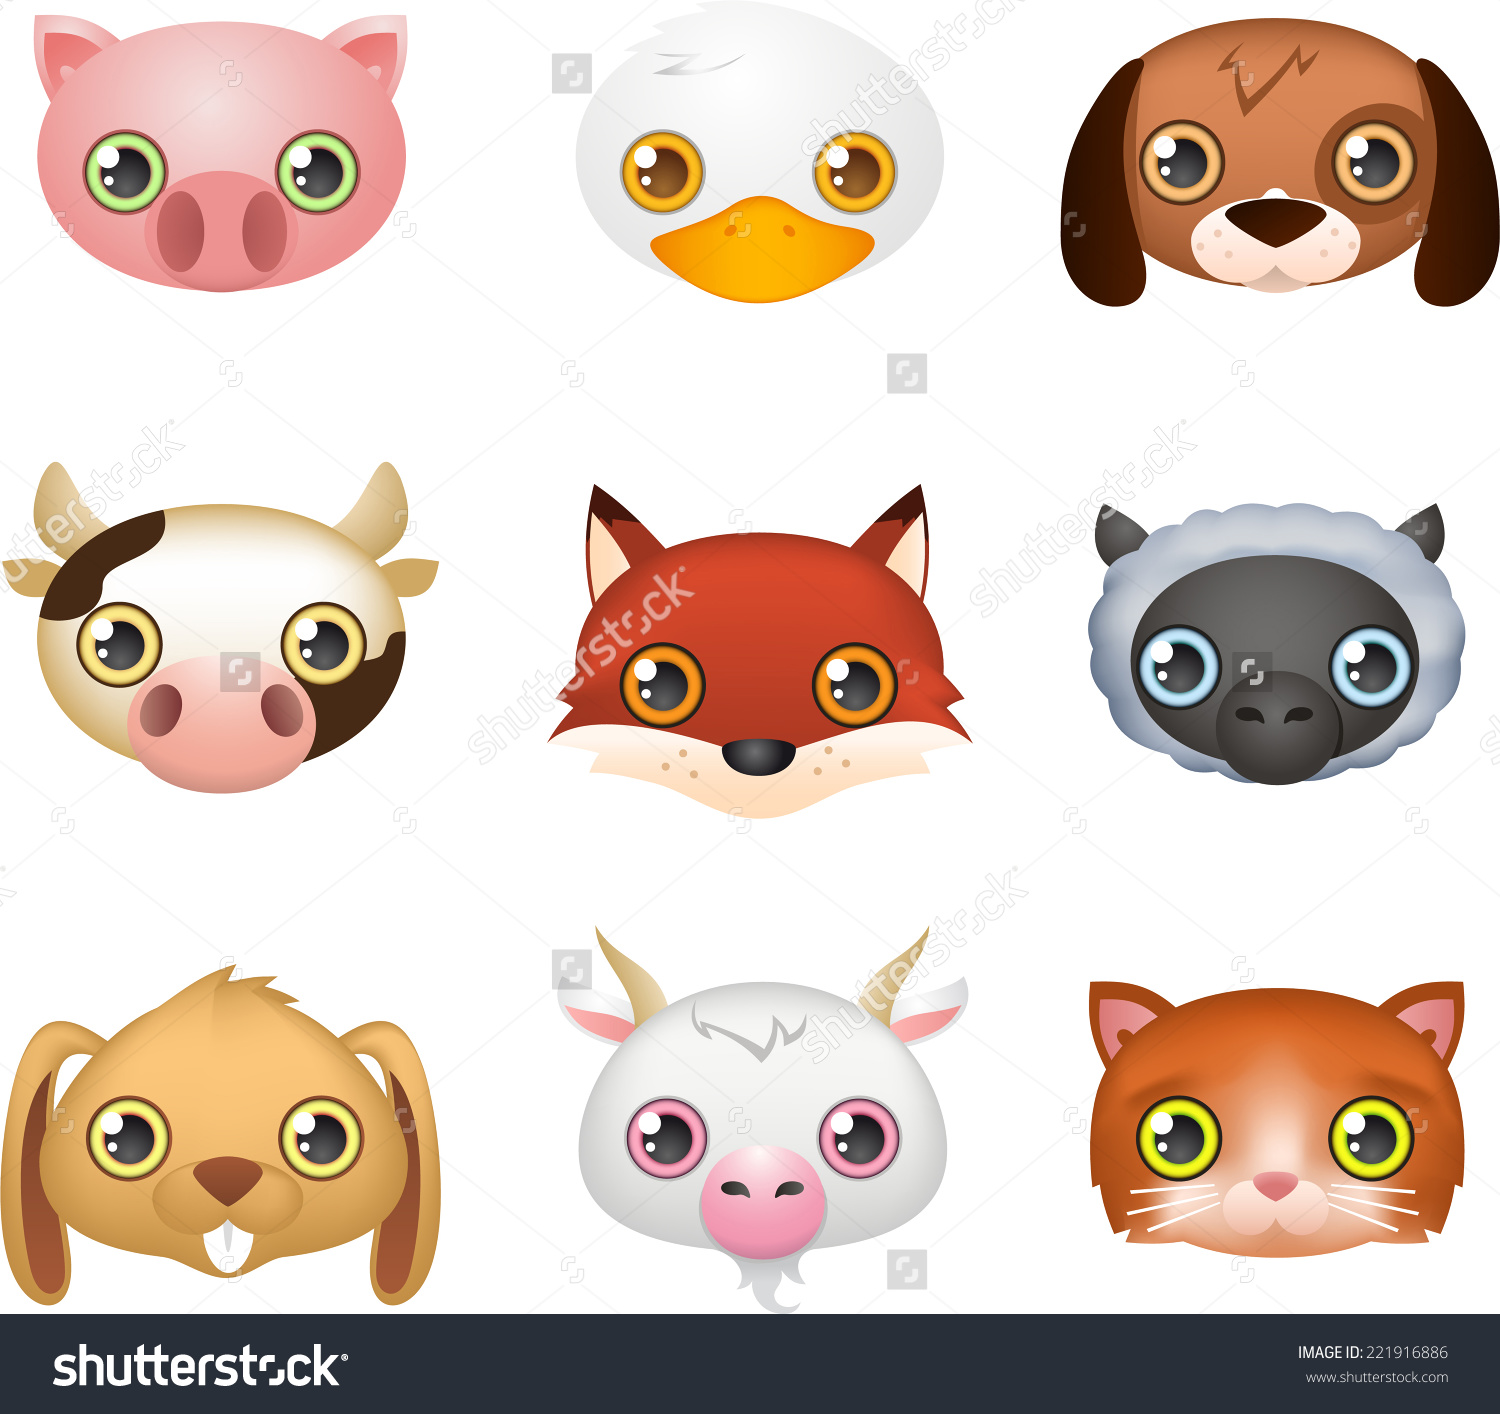 Cute Farm Animal Faces Like Fox Stock Vector 221916886.